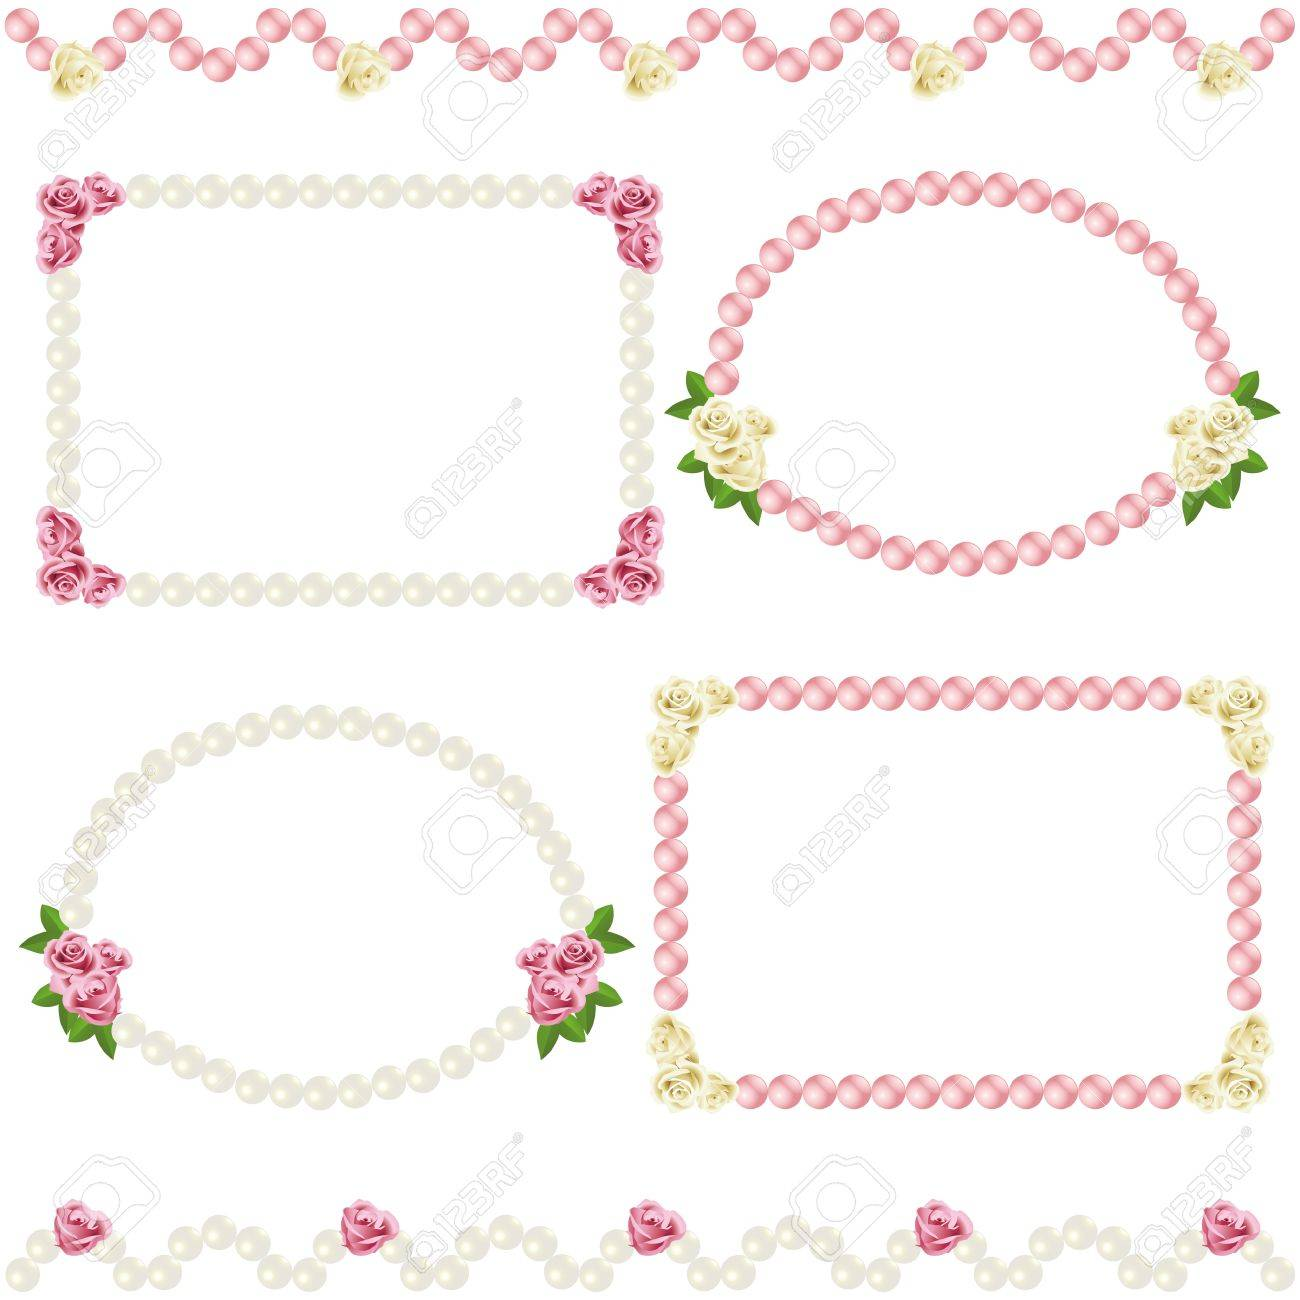 vector rose and pearl frame